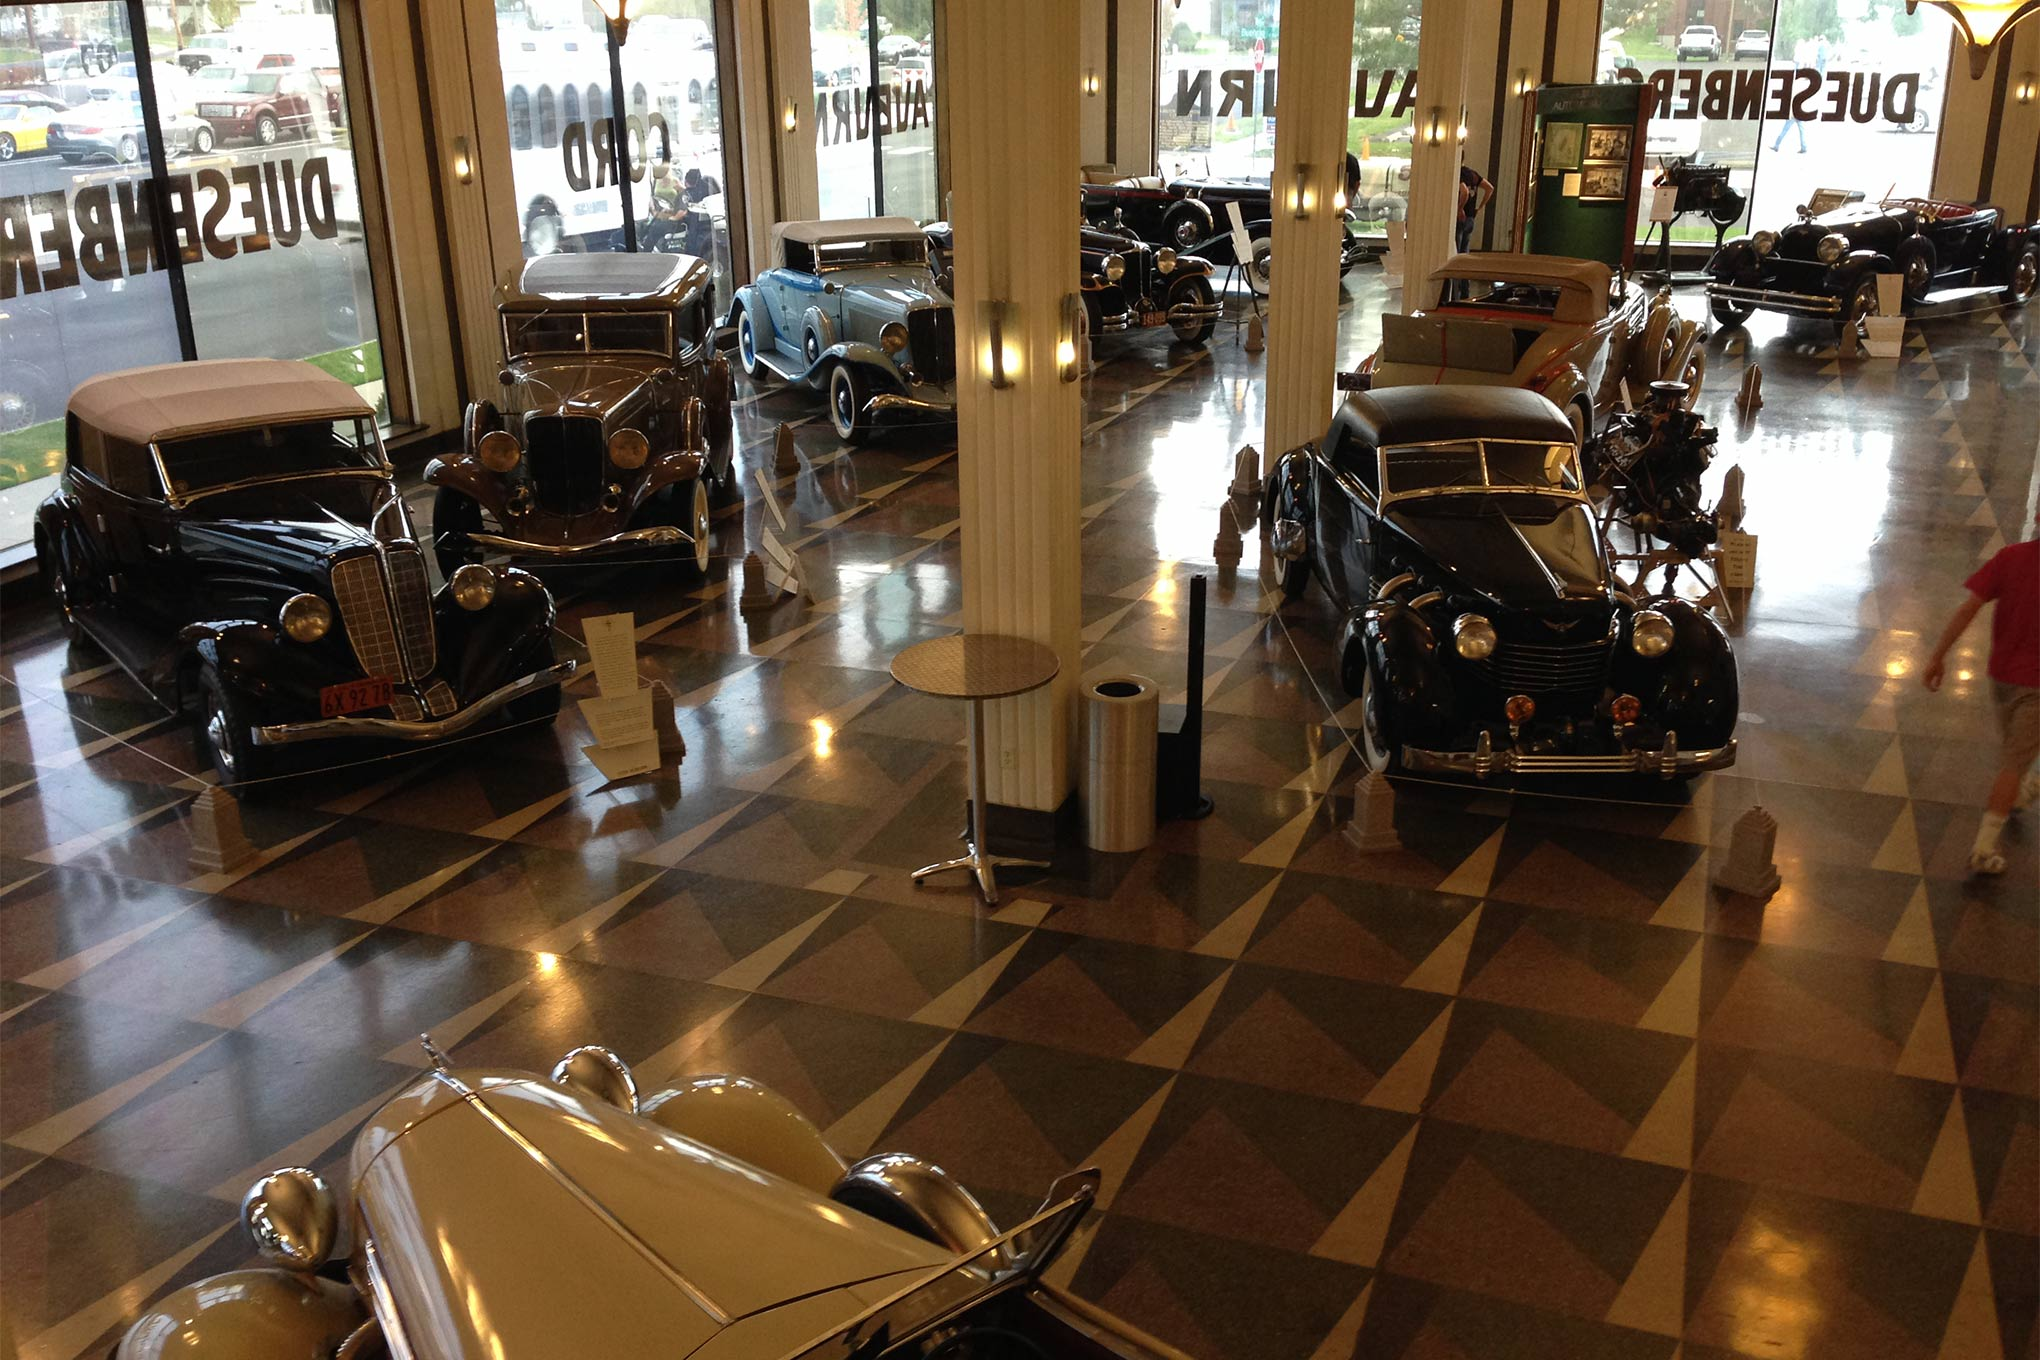 The Auburn Cord Duesenberg Museum, or ACD as it is known in the hobby, houses an amazing collection of classics. The main floor is actually the original showroom for the Auburn Motor Company.